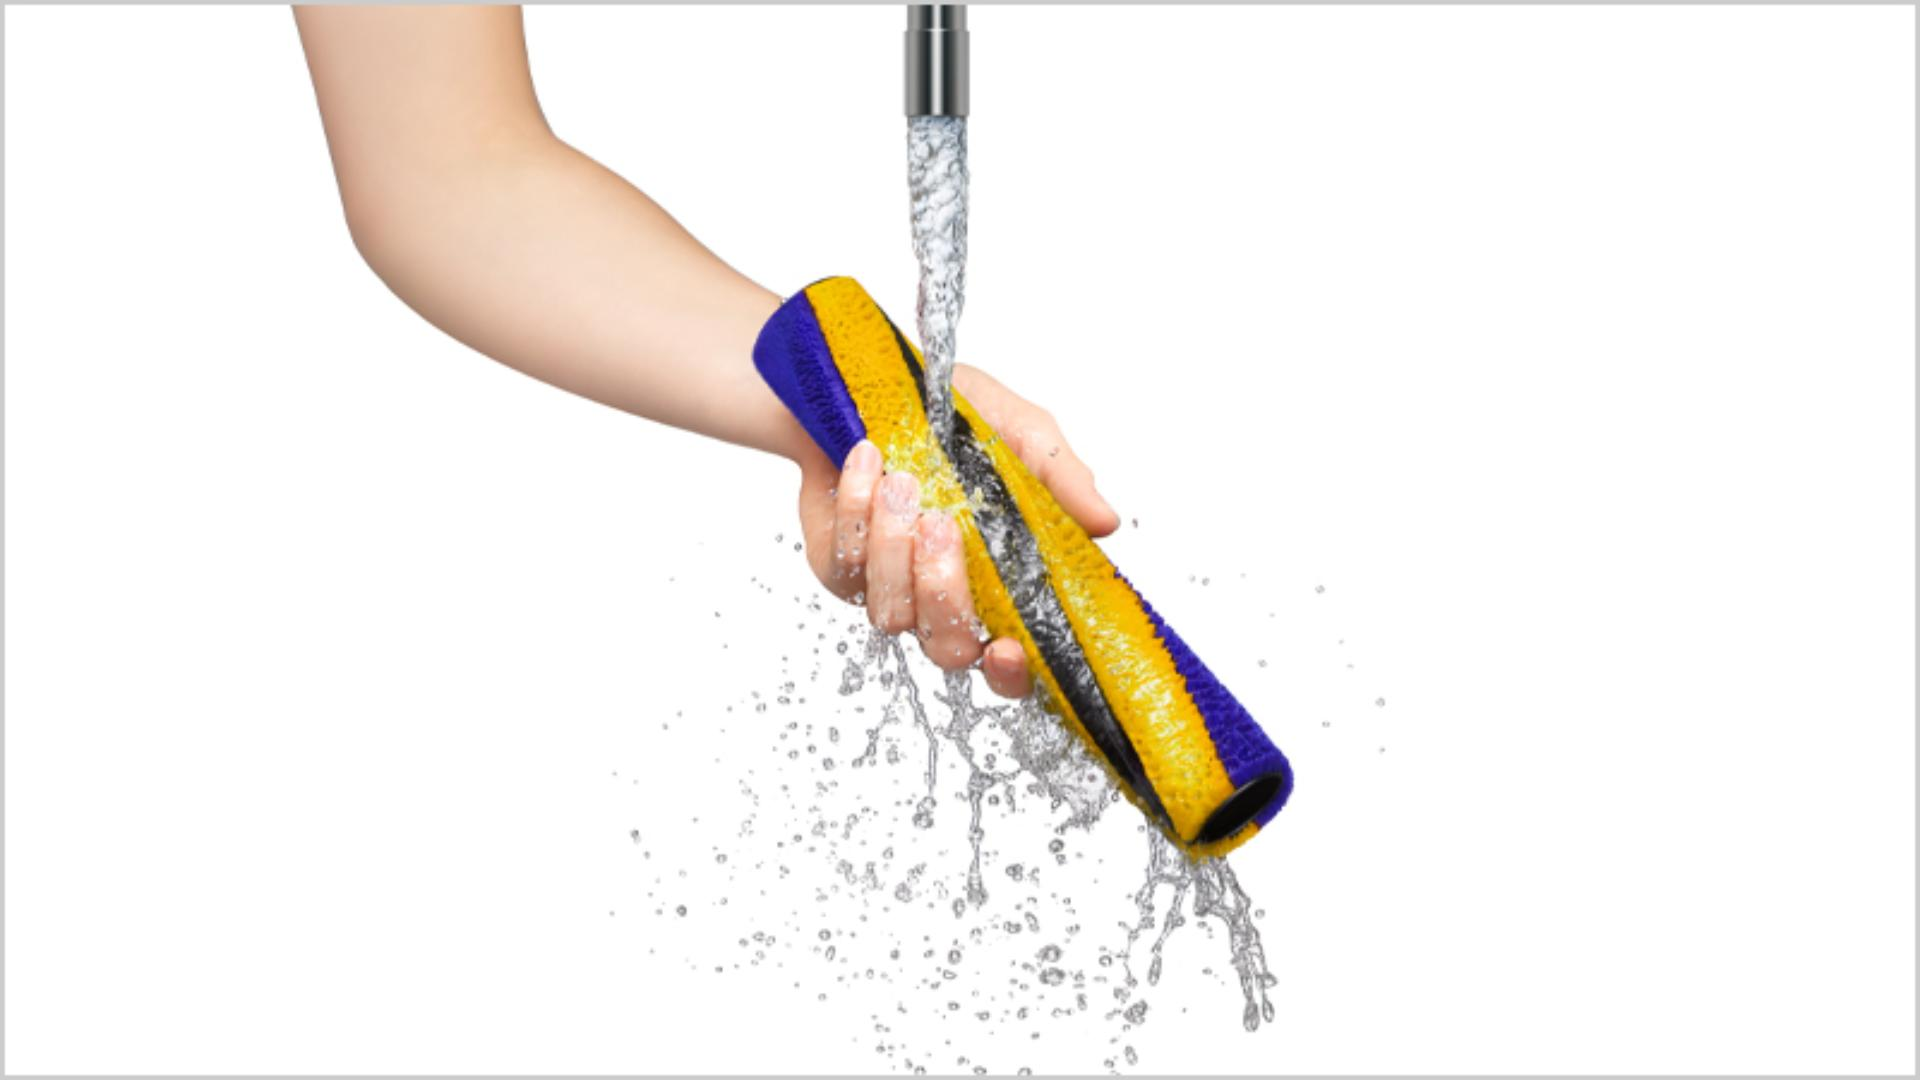 Dyson removable parts being washed in water